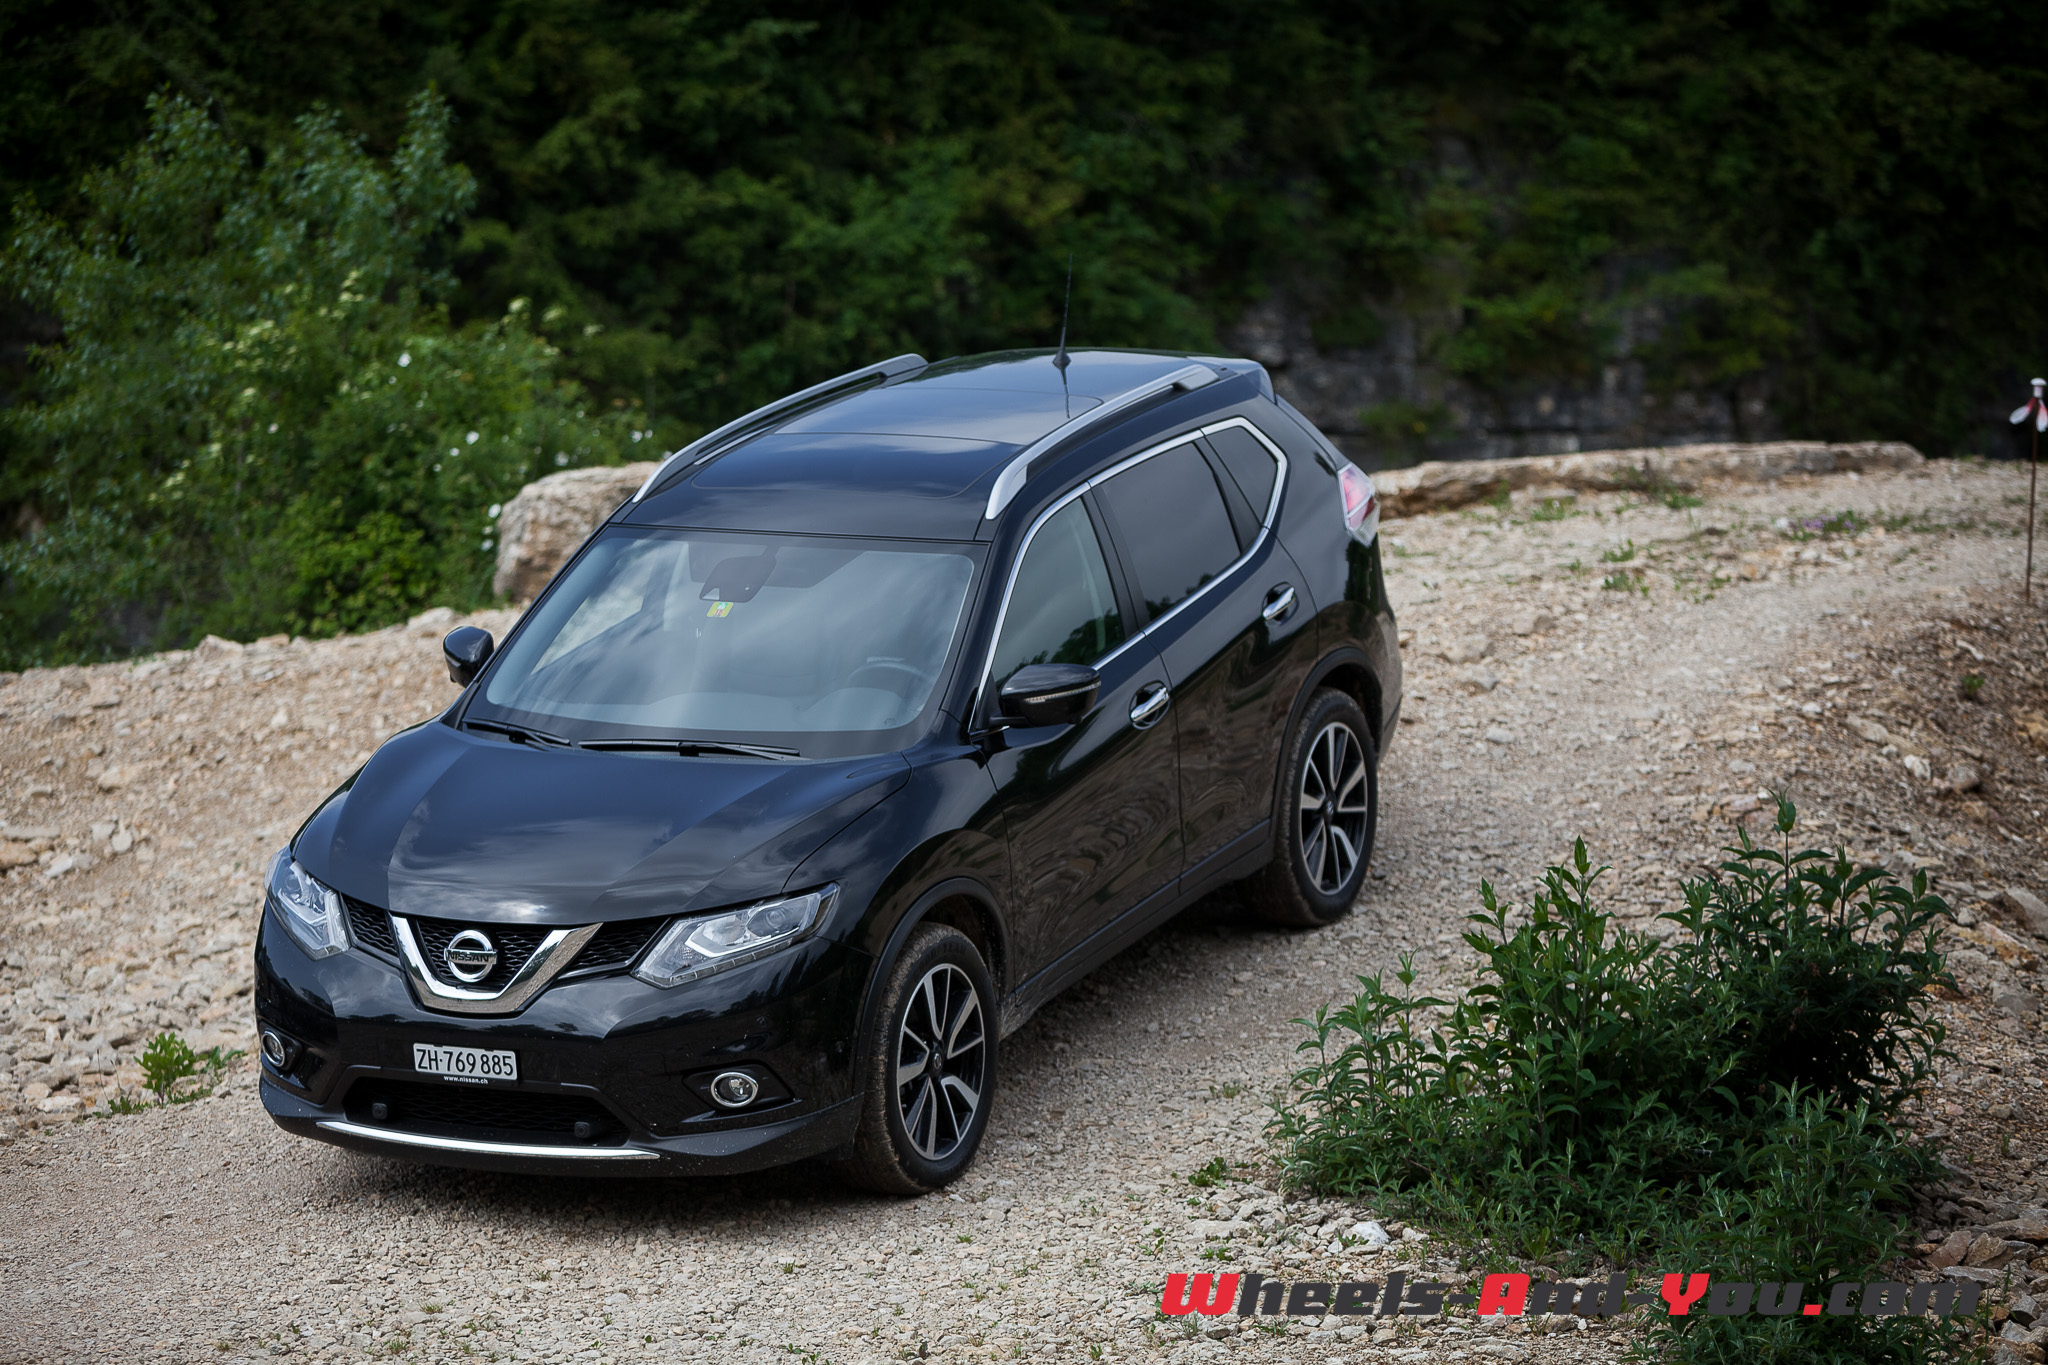 essai nissan x trail le retour d un aventurier en. Black Bedroom Furniture Sets. Home Design Ideas